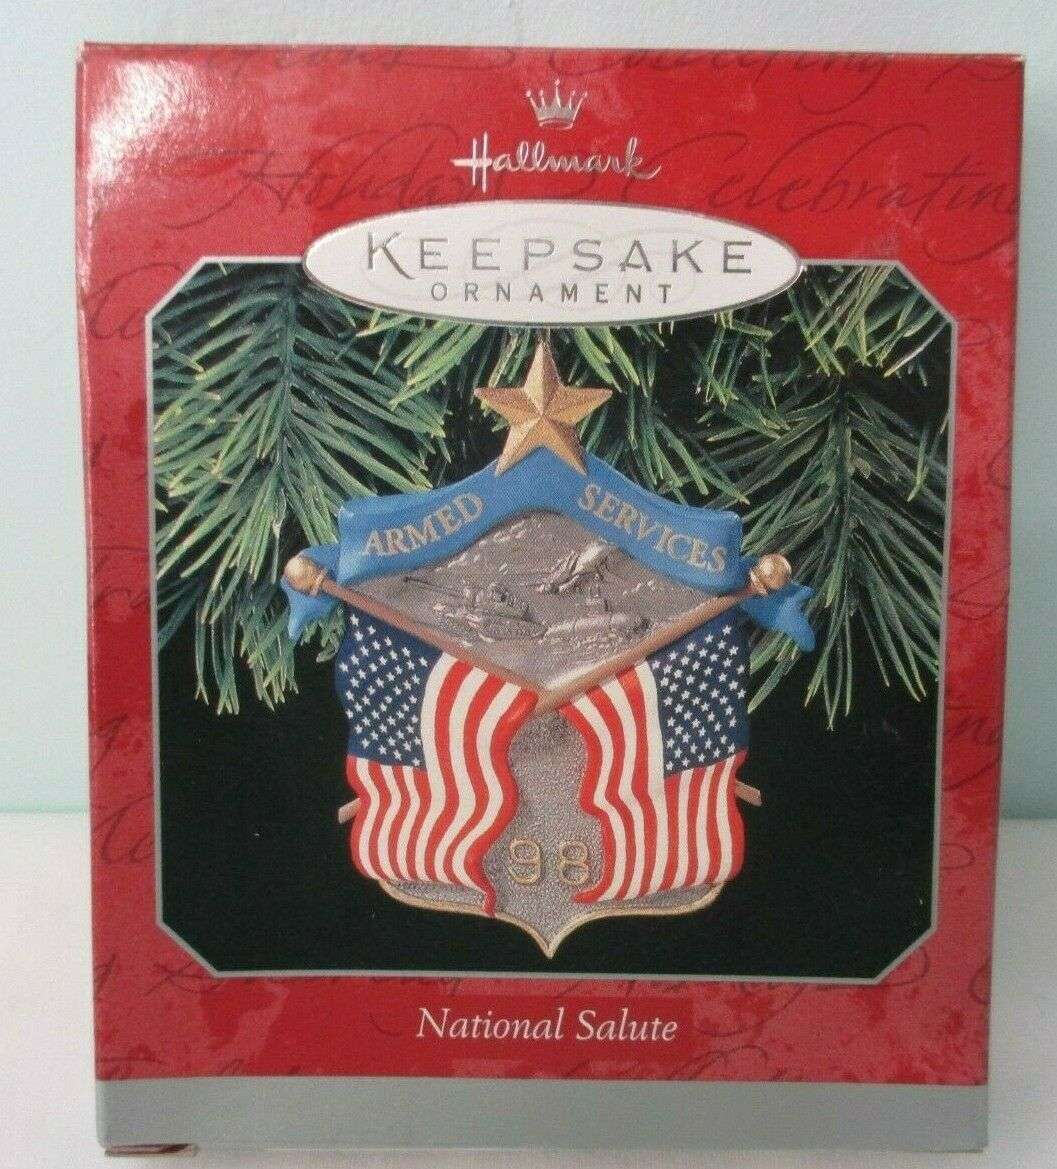 Primary image for National Armed Services Salute 1998 Hallmark Keepsake Ornament New in Box